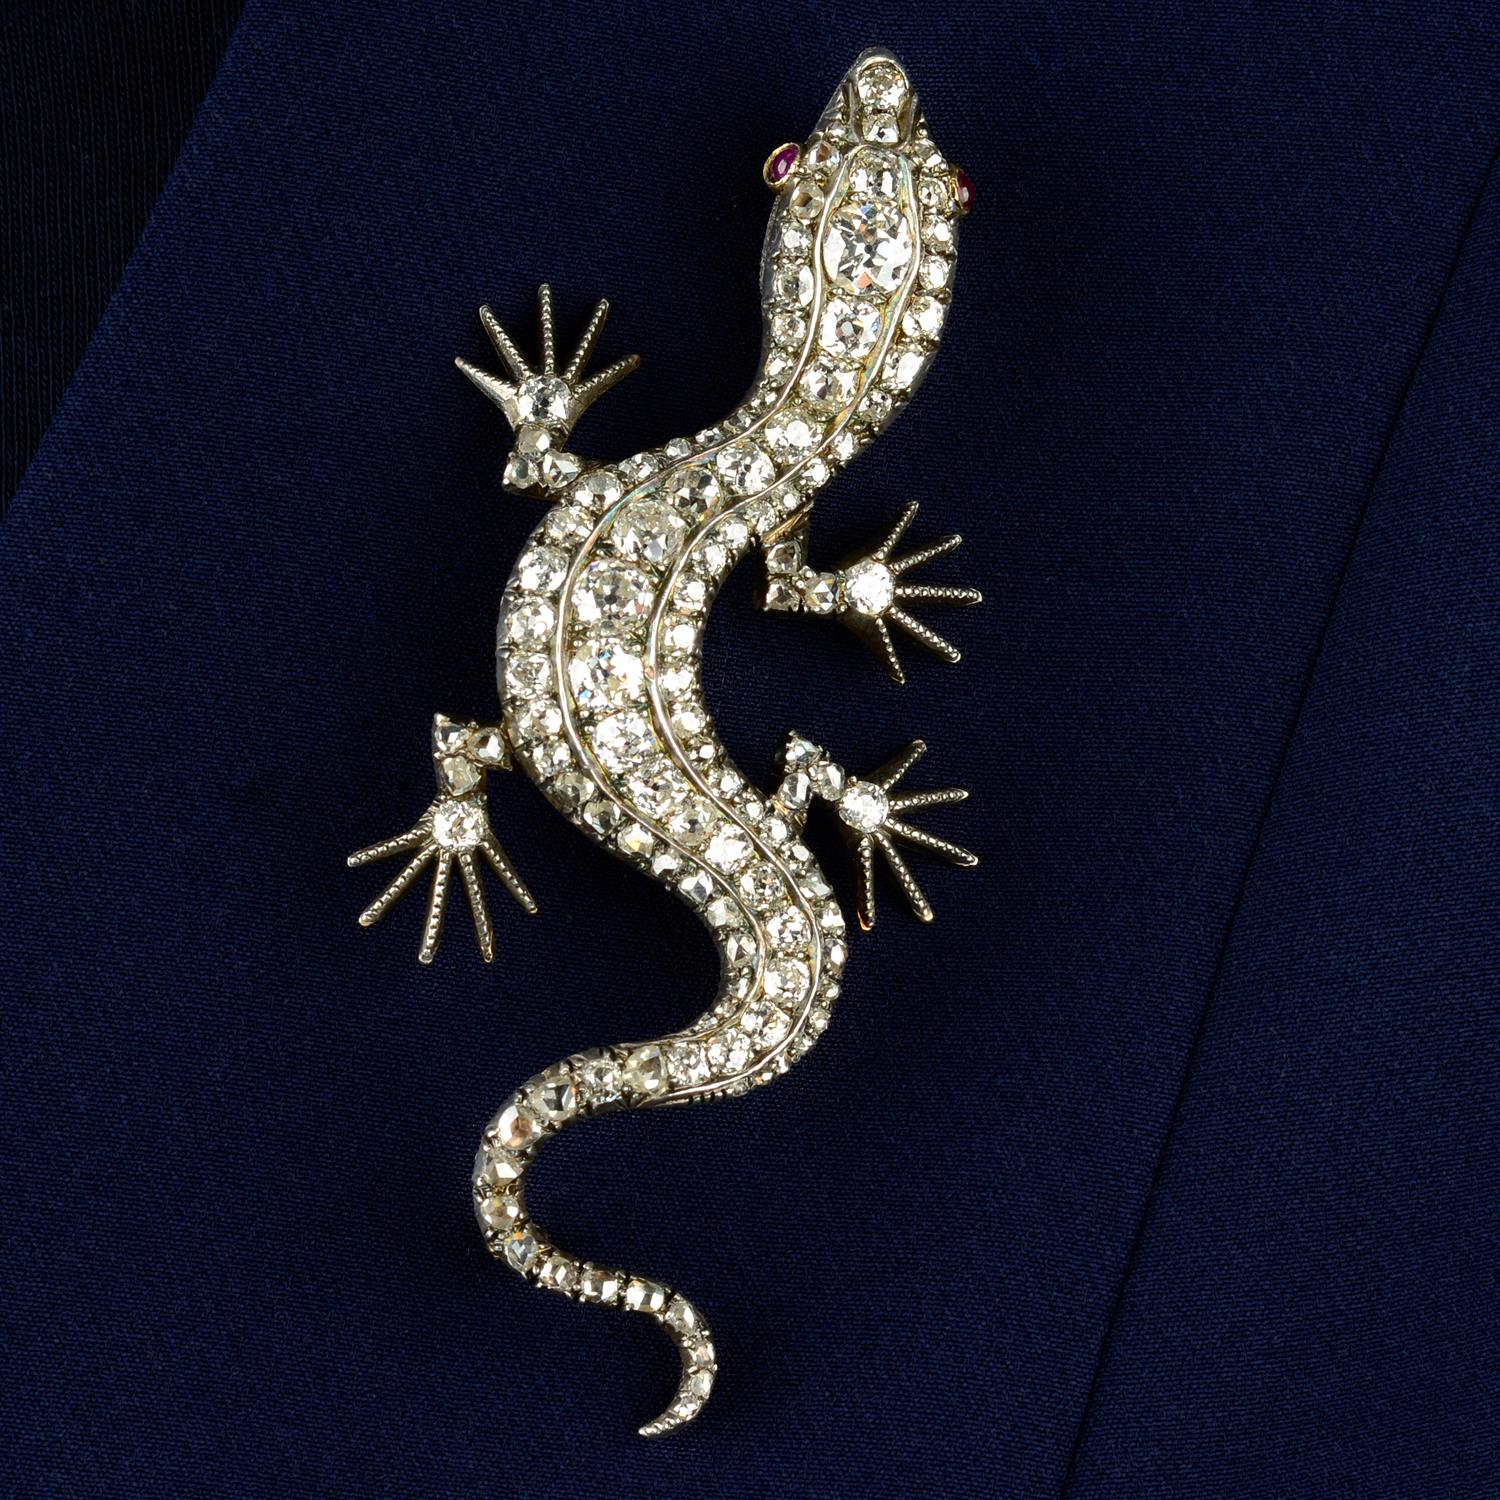 A Victorian silver and gold, old and rose-cut diamond salamander or lizard brooch.